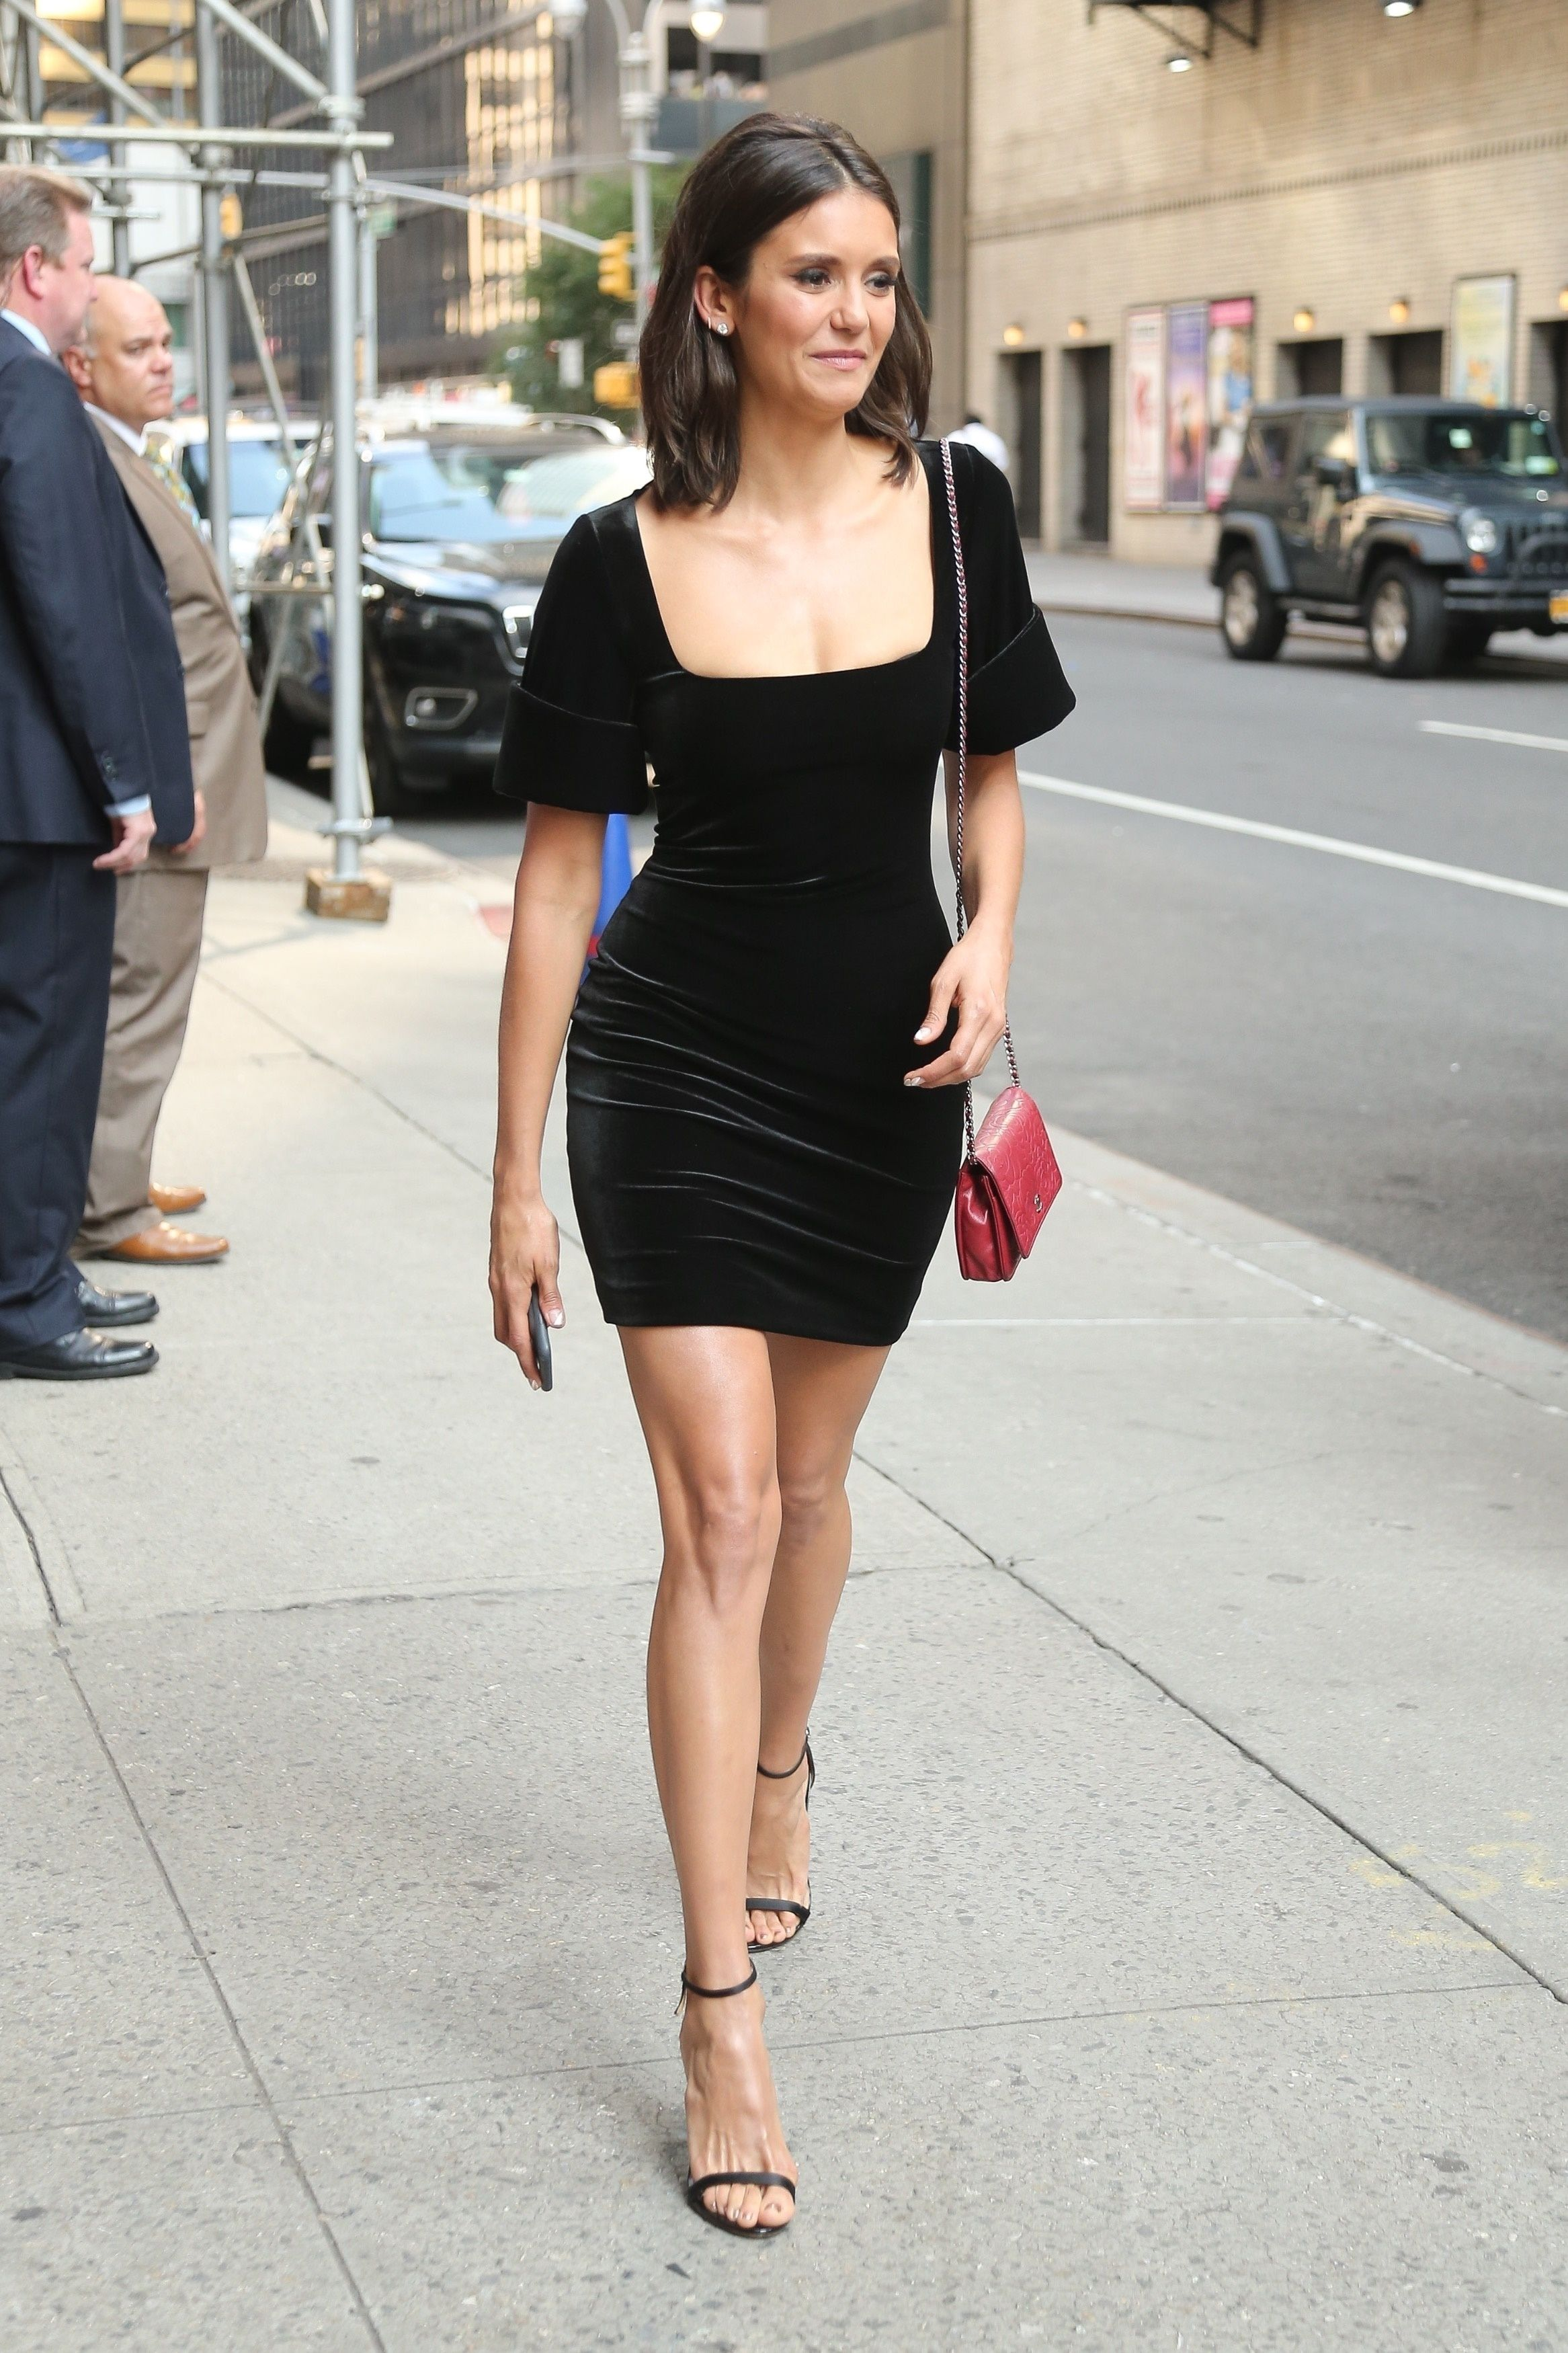 Nina Dobrev Wearing A Black Mini Dress While Leaving The